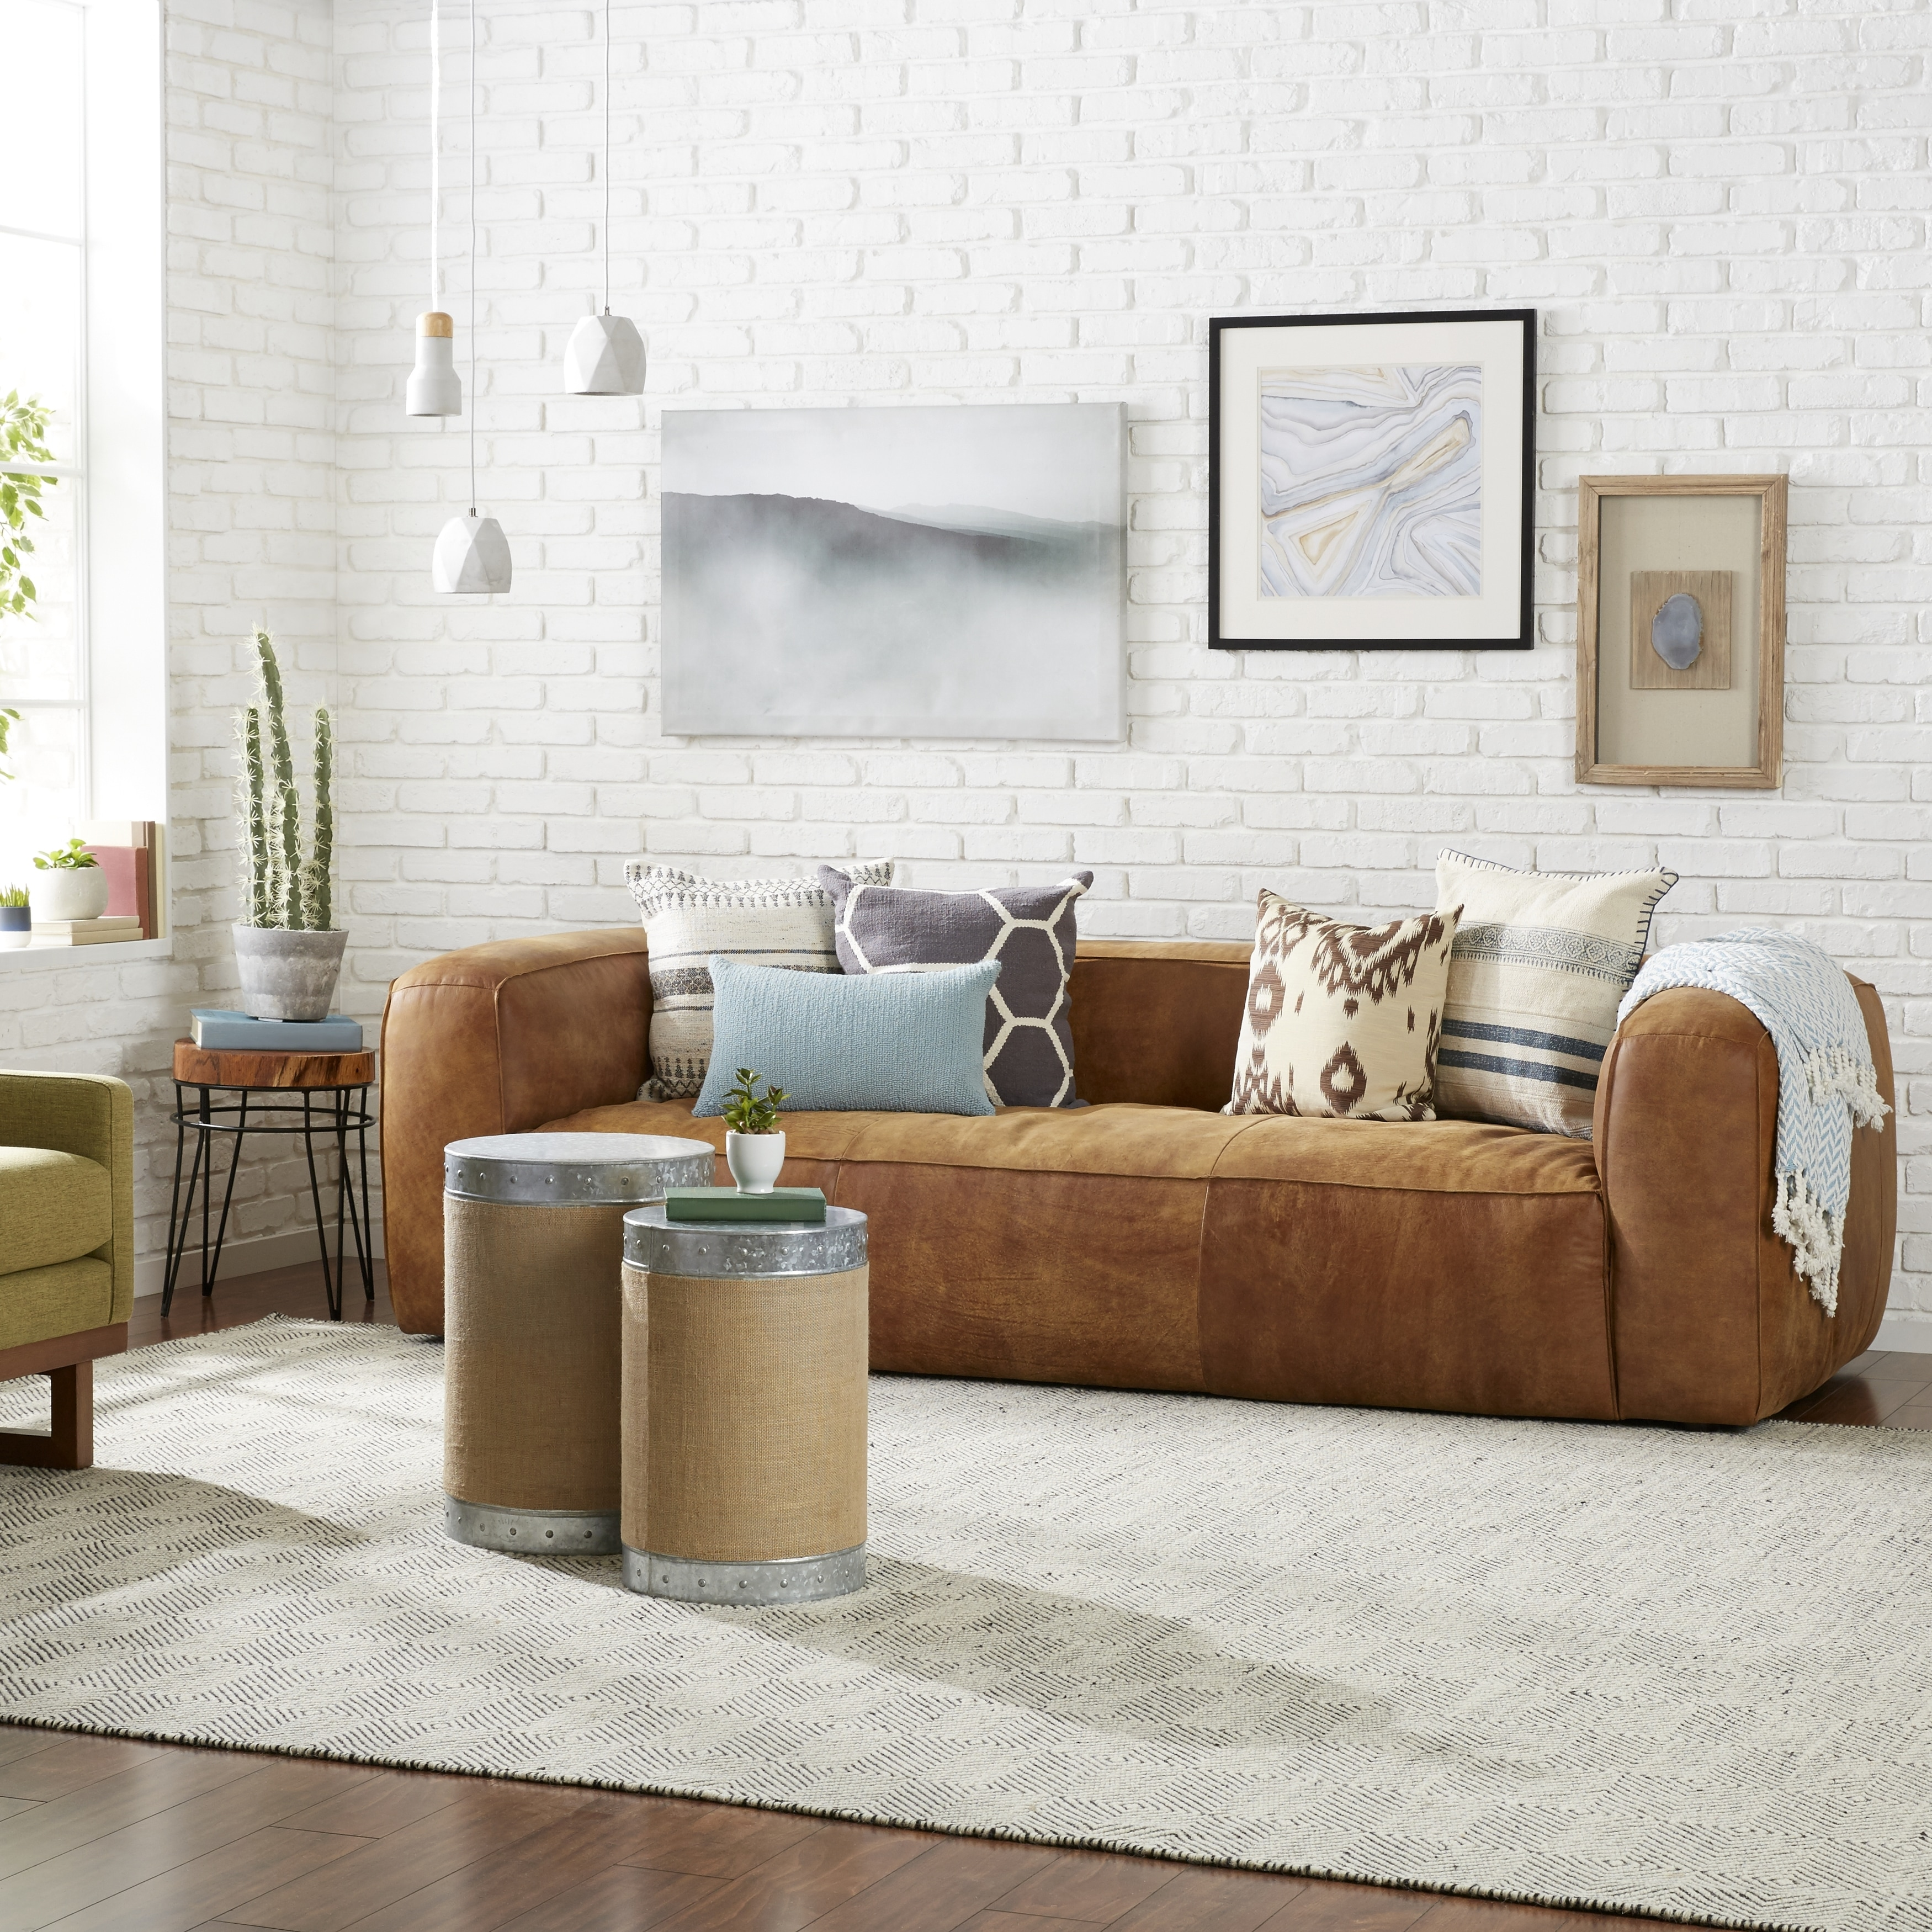 Buy Brown Sofas & Couches Online at Overstock | Our Best Living Room ...